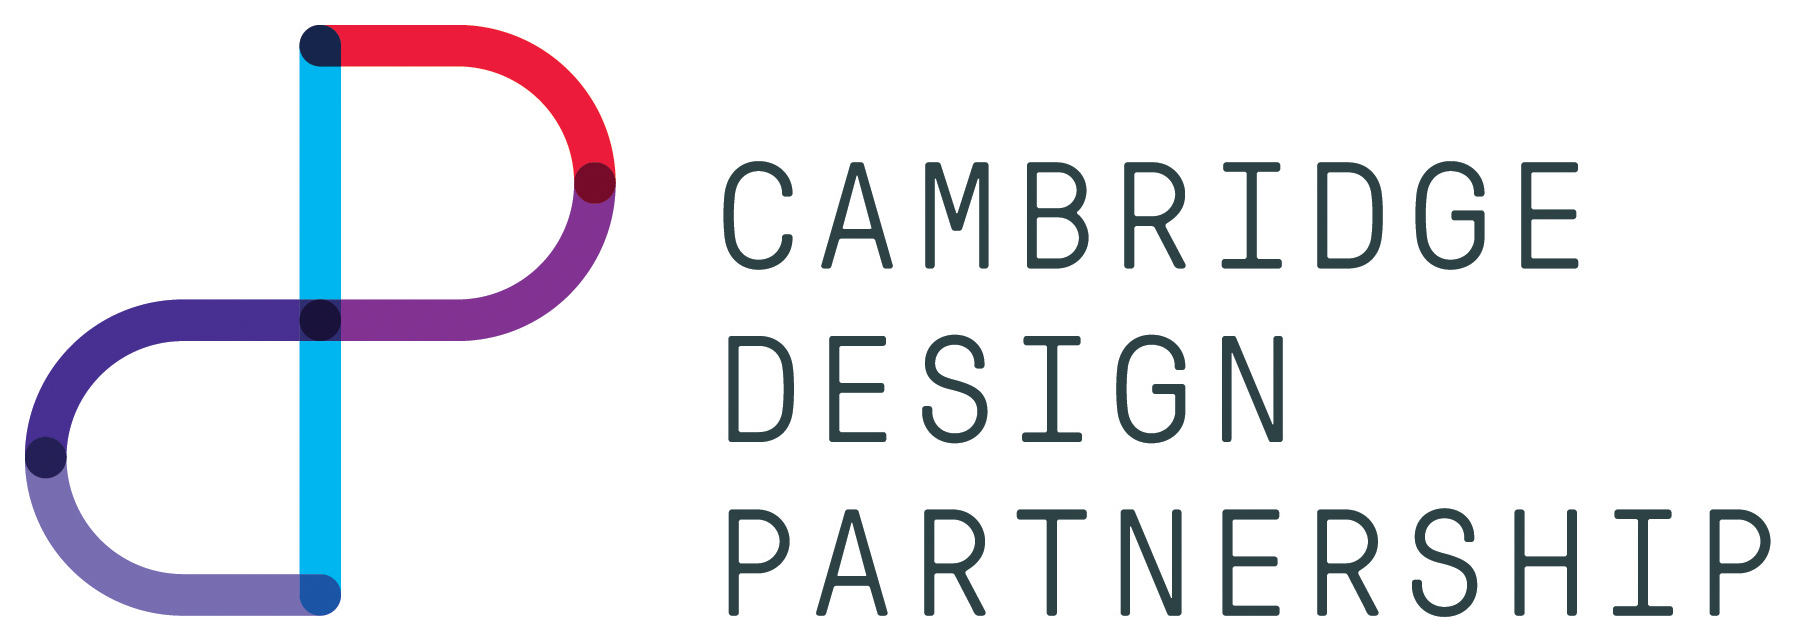 https://www.cambridge-design.co.uk/